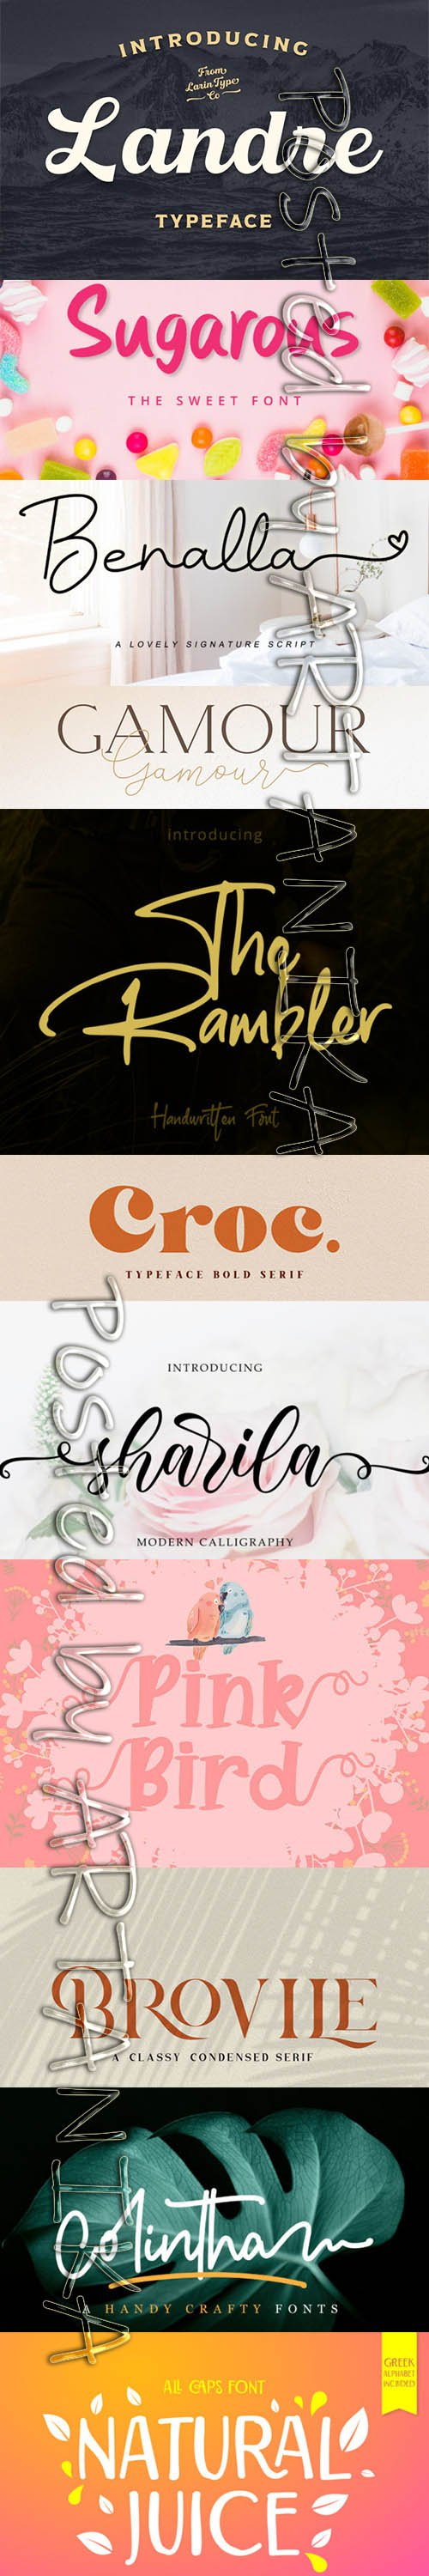 Collection of 11 Creative Fresh Fonts 2020 Vol 8